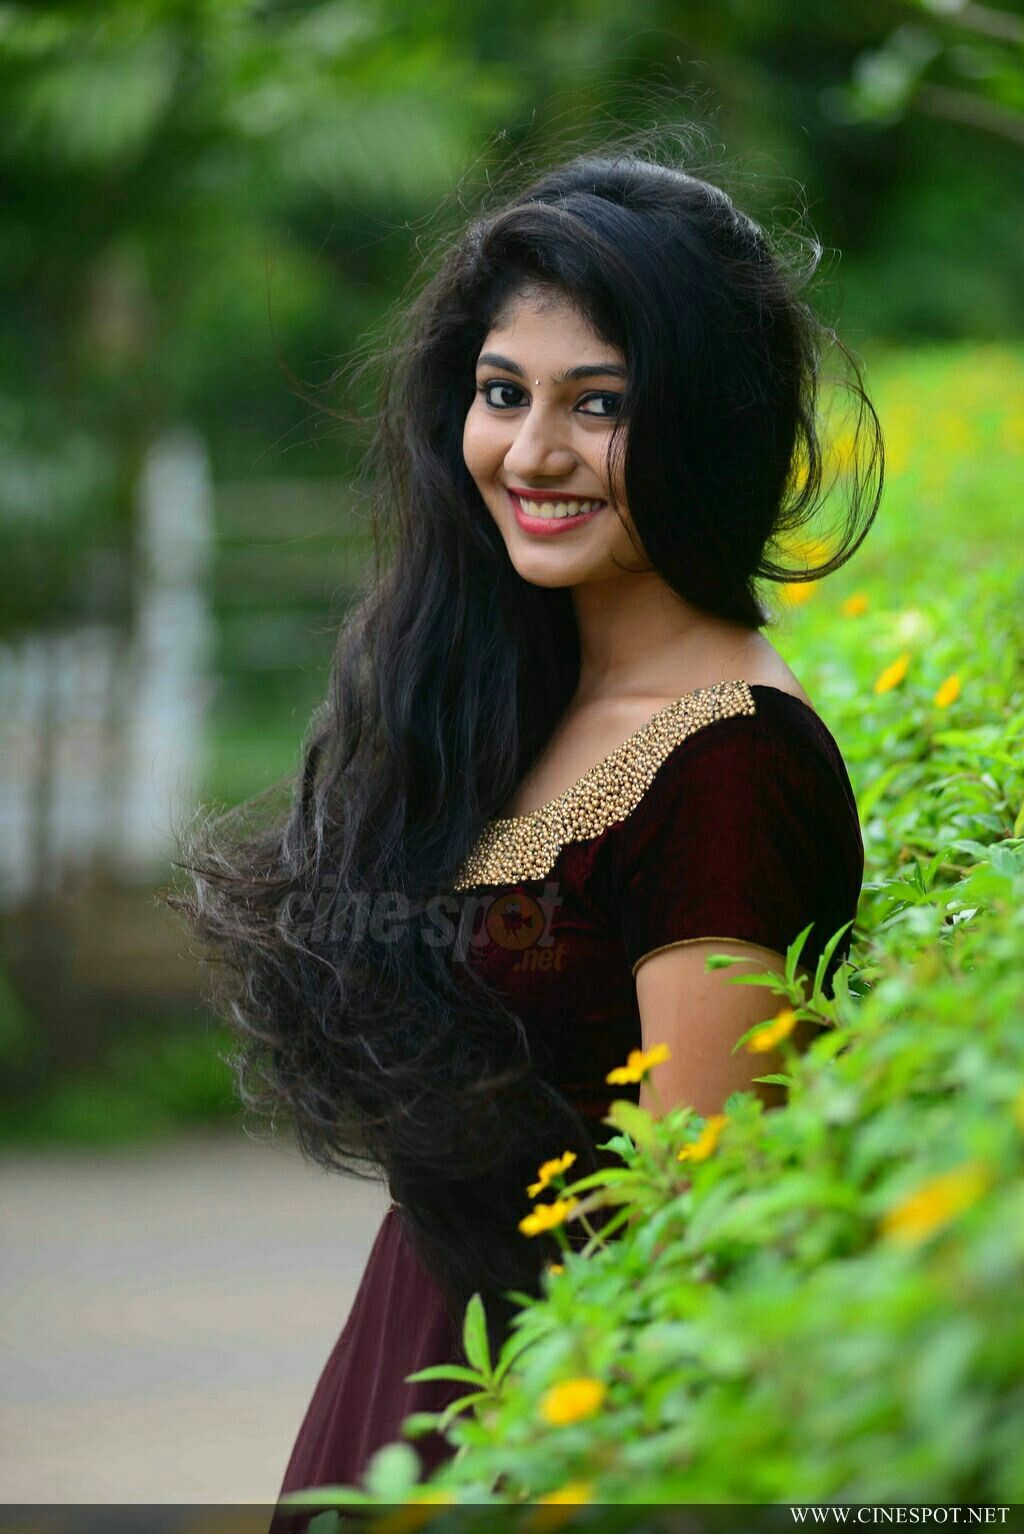 Pin By R K On Beauty Beauty Girl Beauty Full Girl Indian Natural Beauty